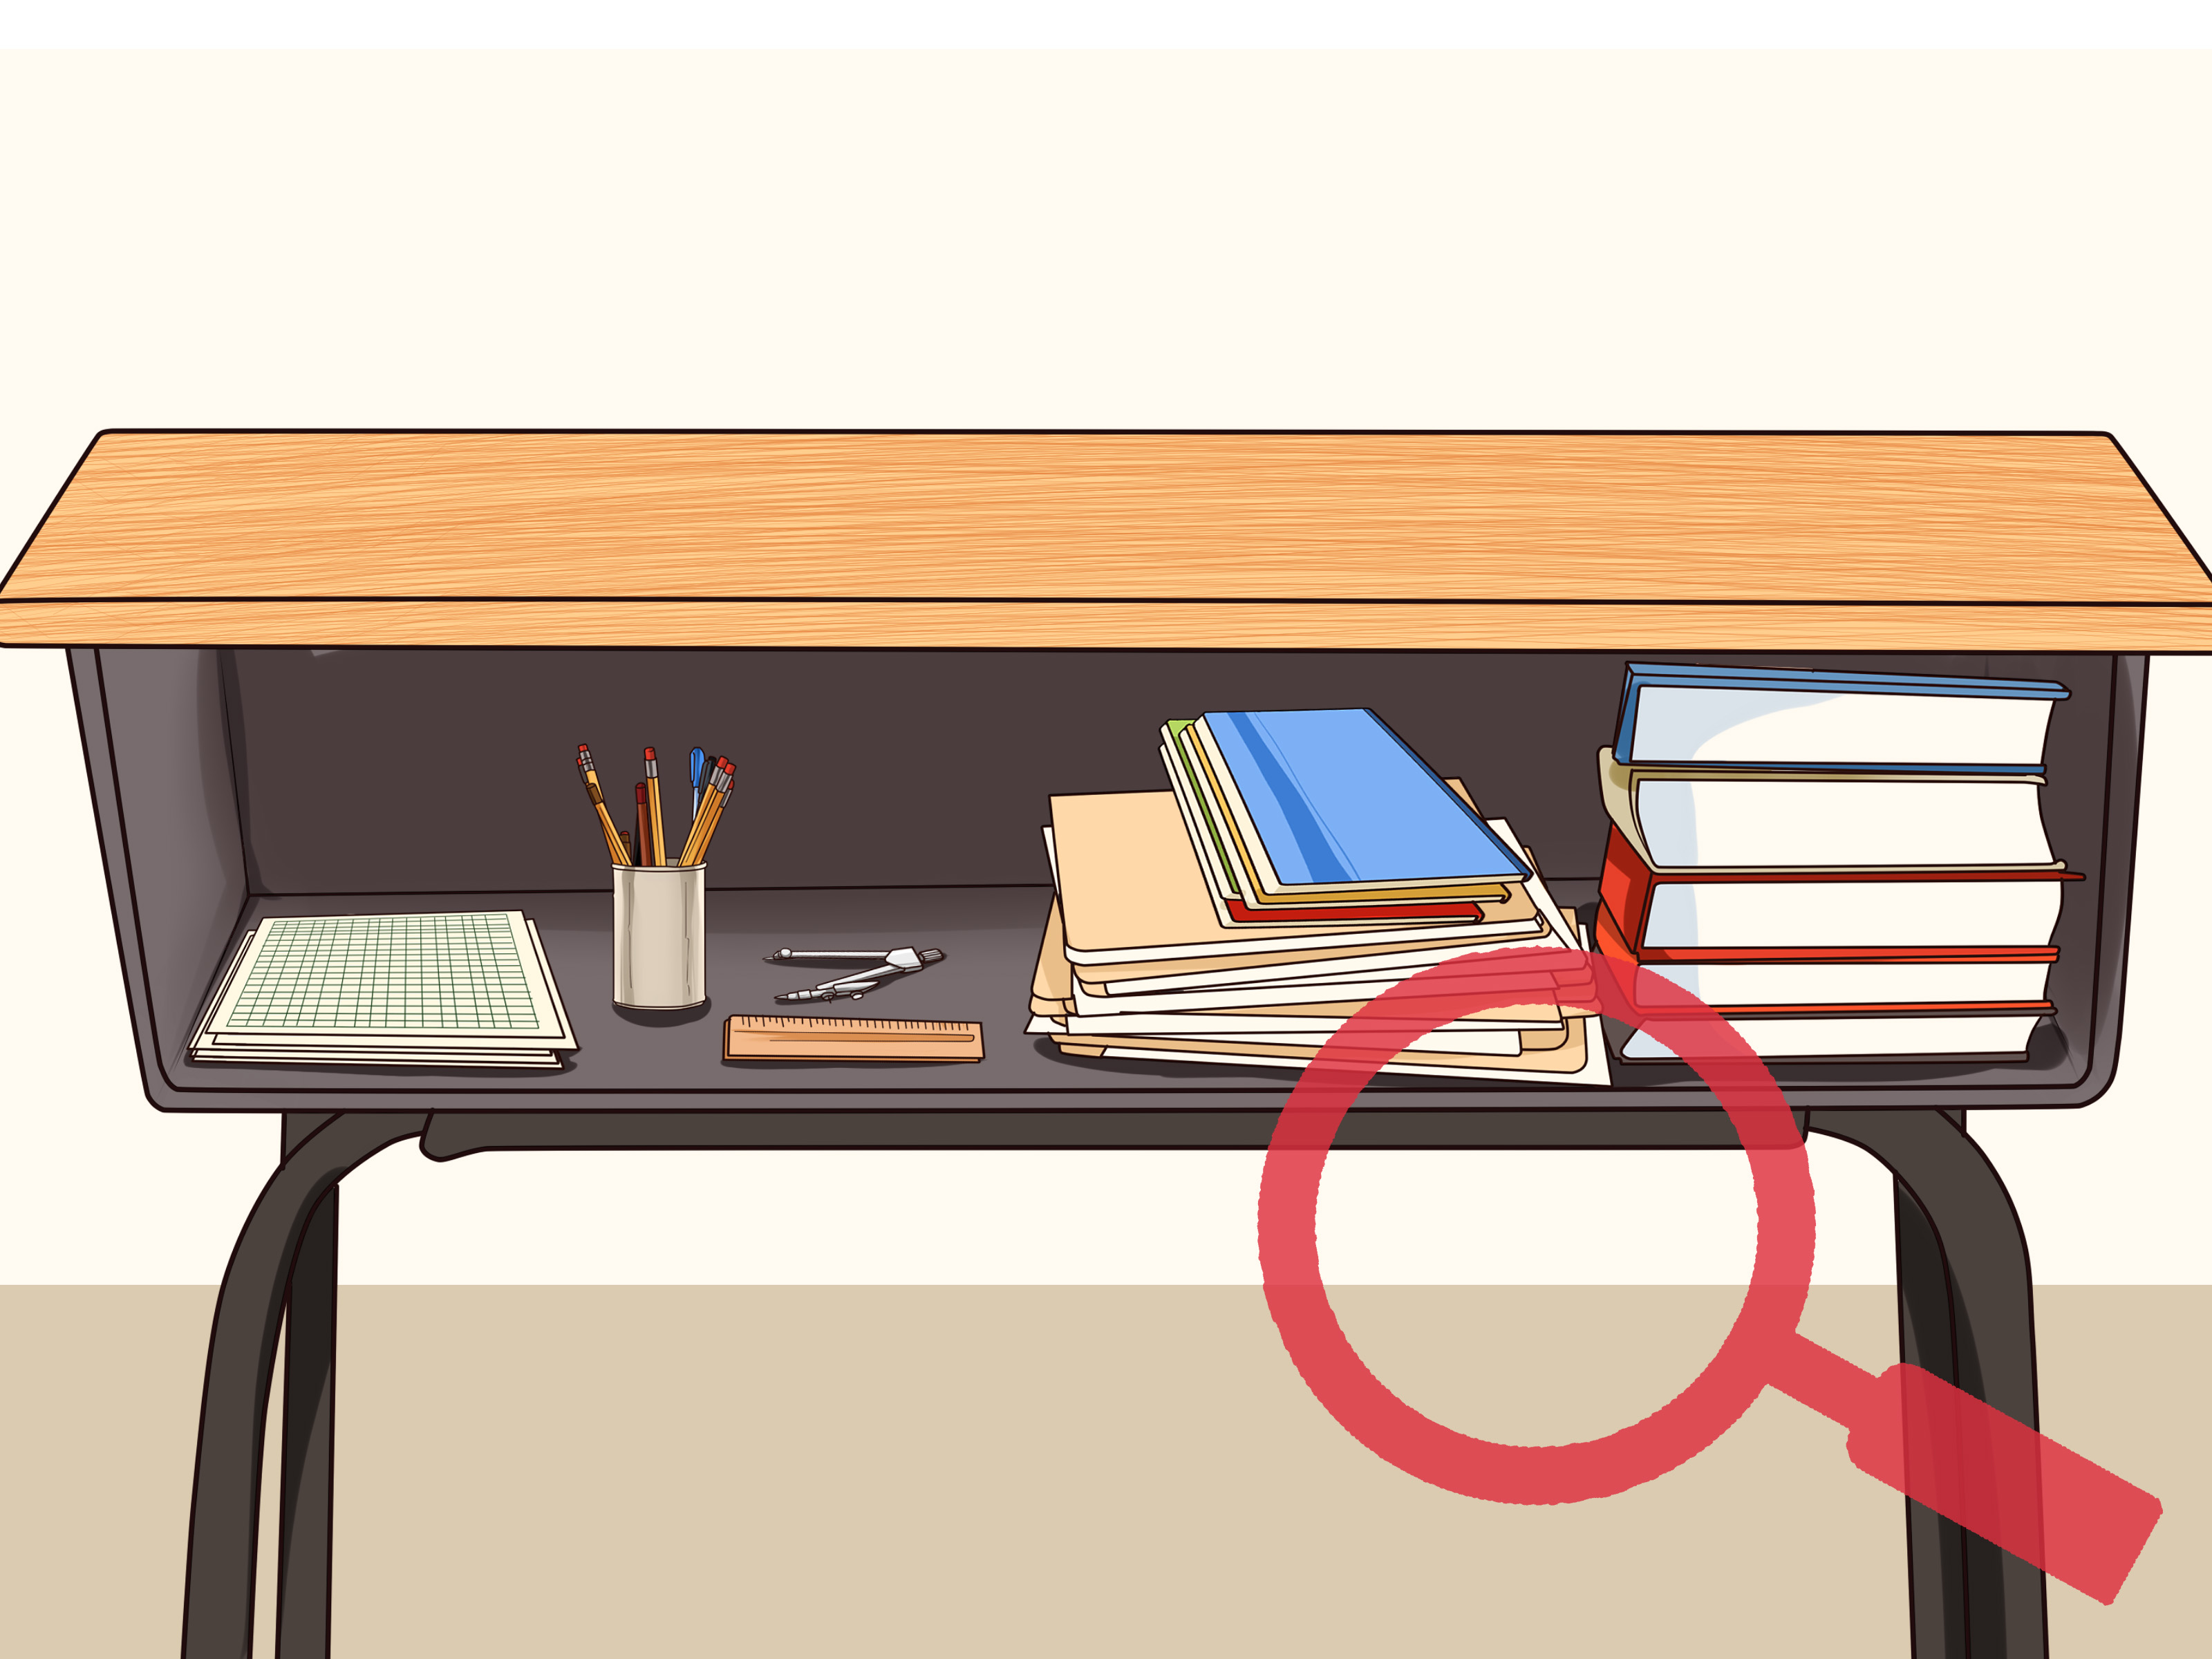 Organized clipart. Table desk pencil and